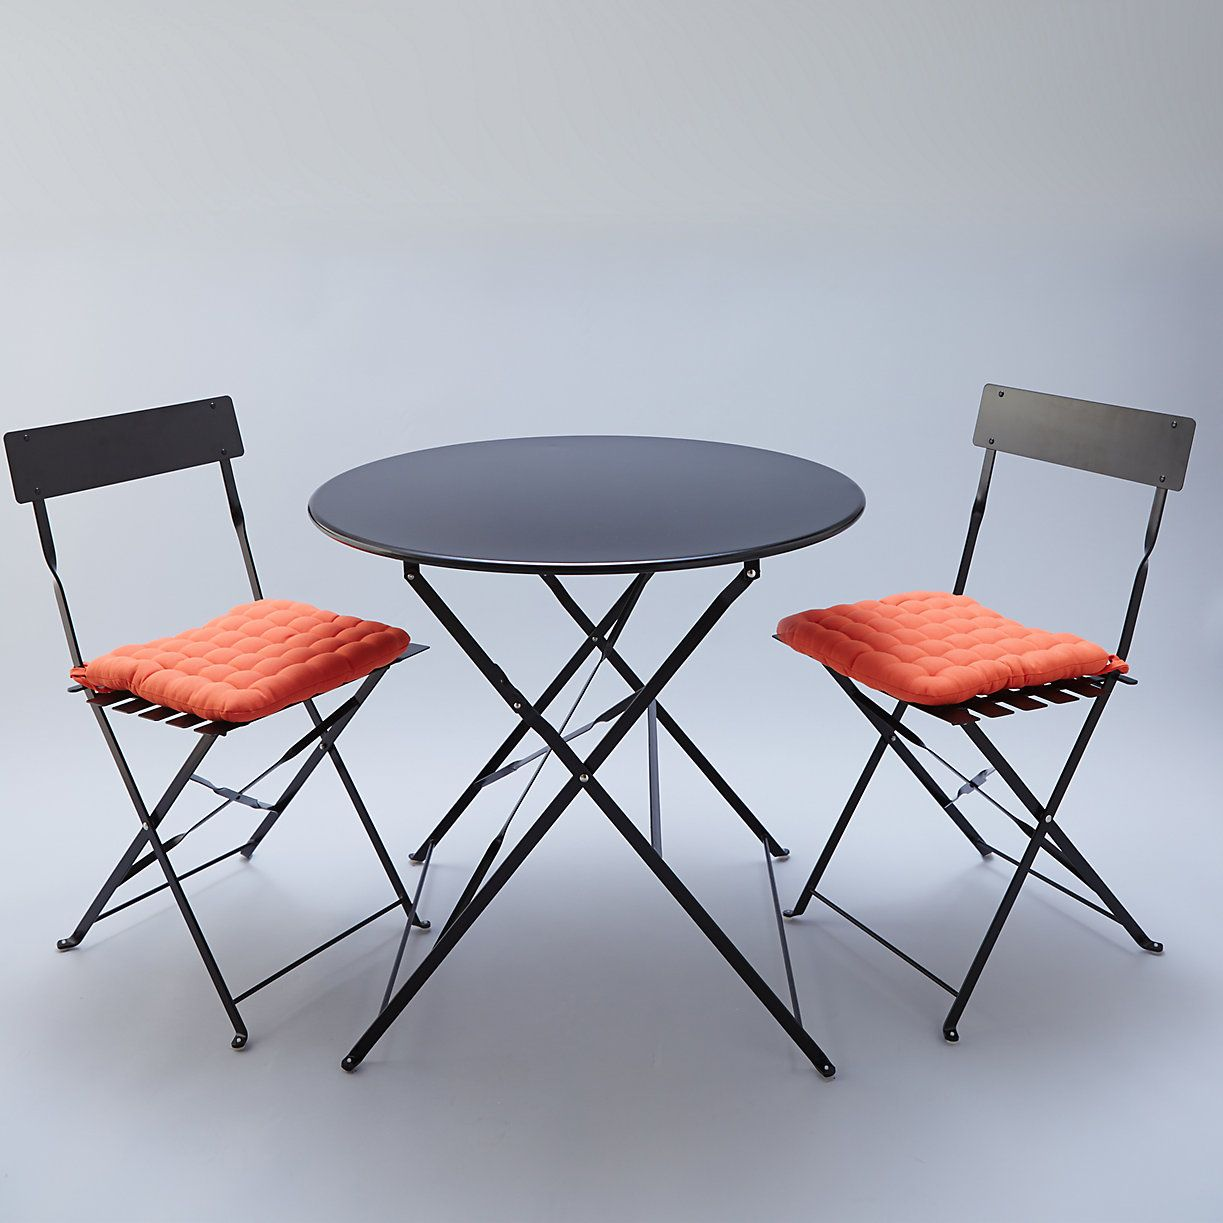 painted metal bistro chair bistro chairs painted metal and